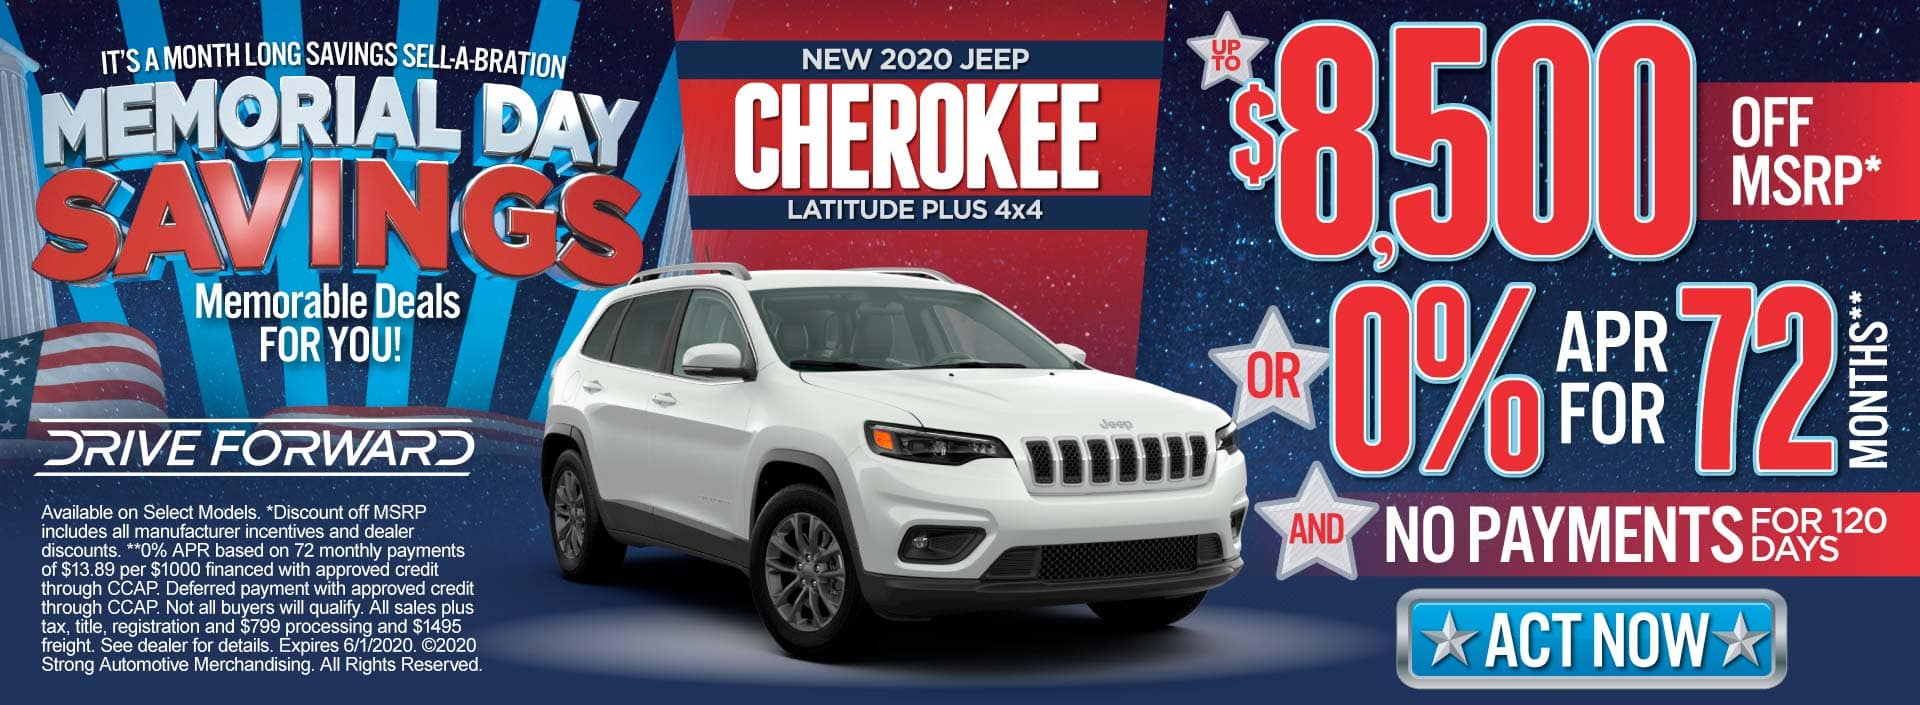 New 2020 Jeep Cherokee up to $8500 Off MSRP or 0% for 72 months & No Payments for 120 Days. ACT NOW